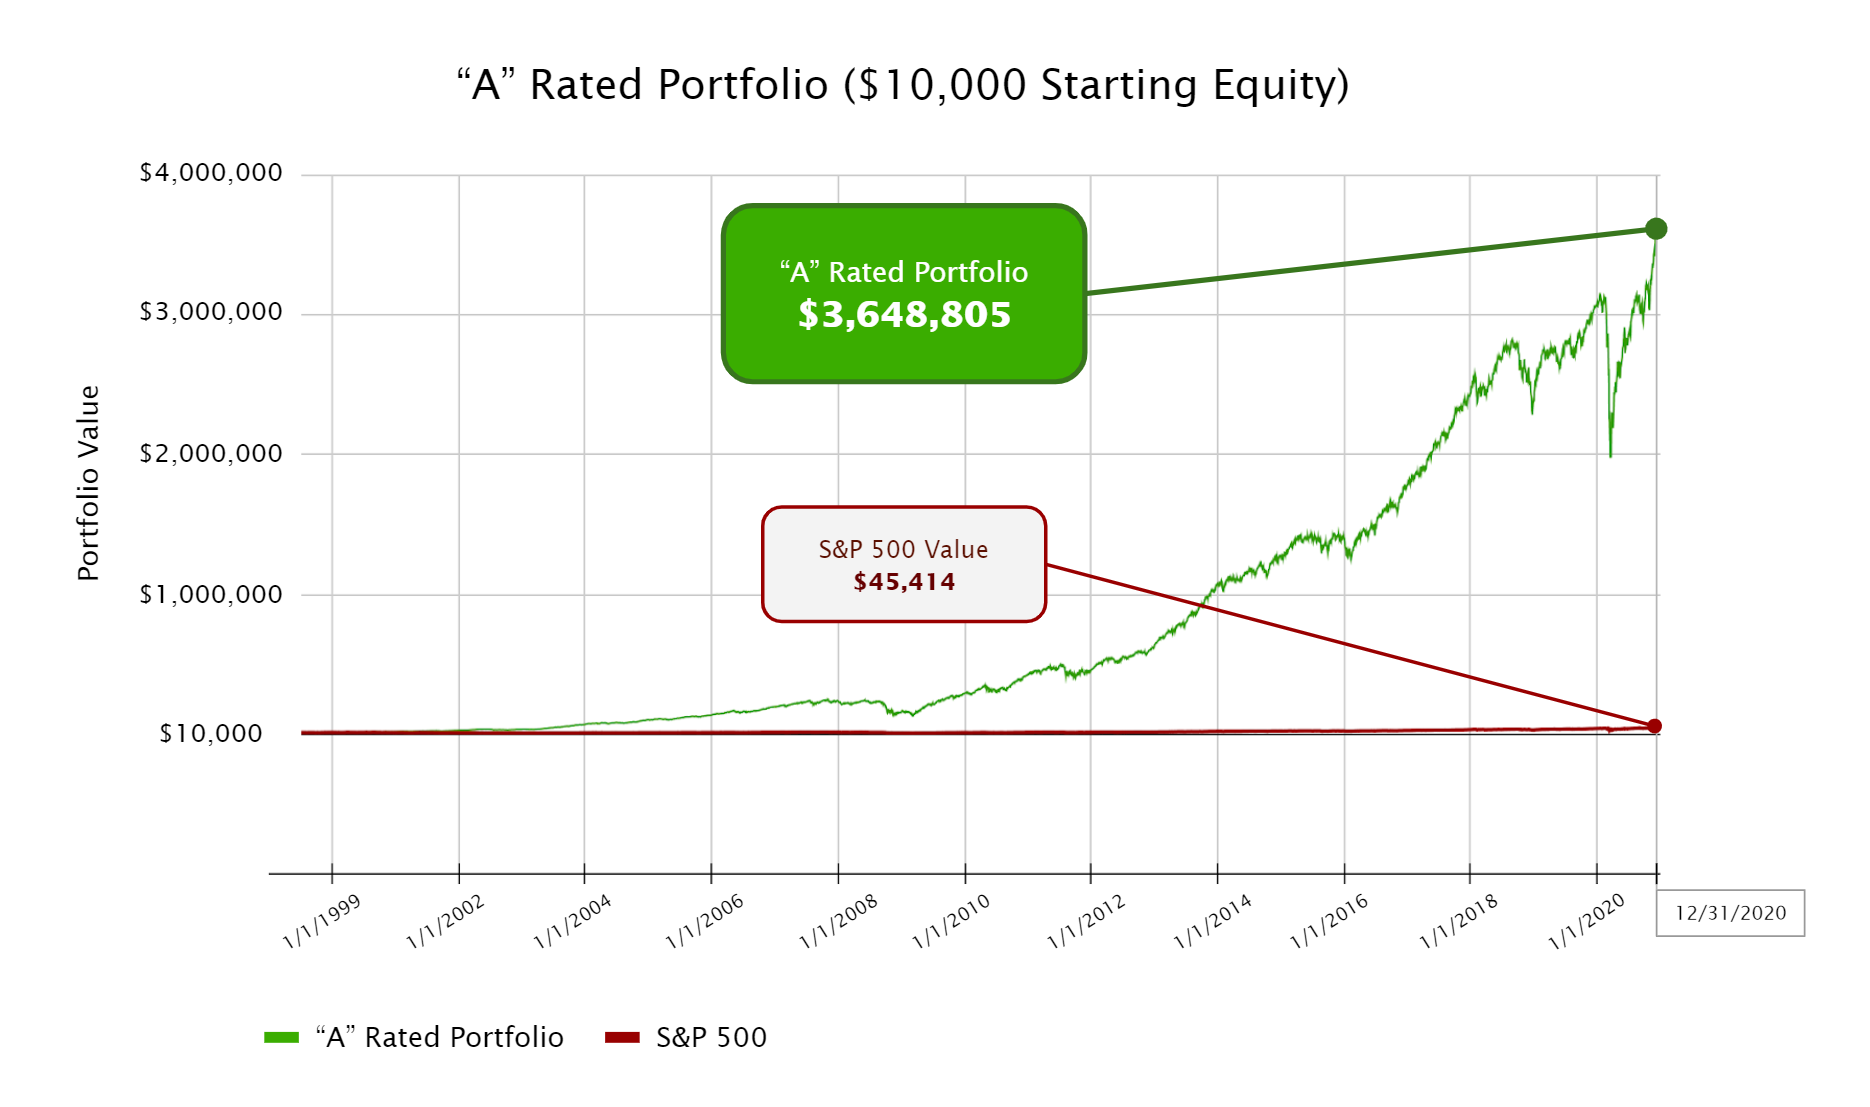 Returns Chart showing the value of a $10,000 investment in the A rated stocks over time grows to $3.6 million